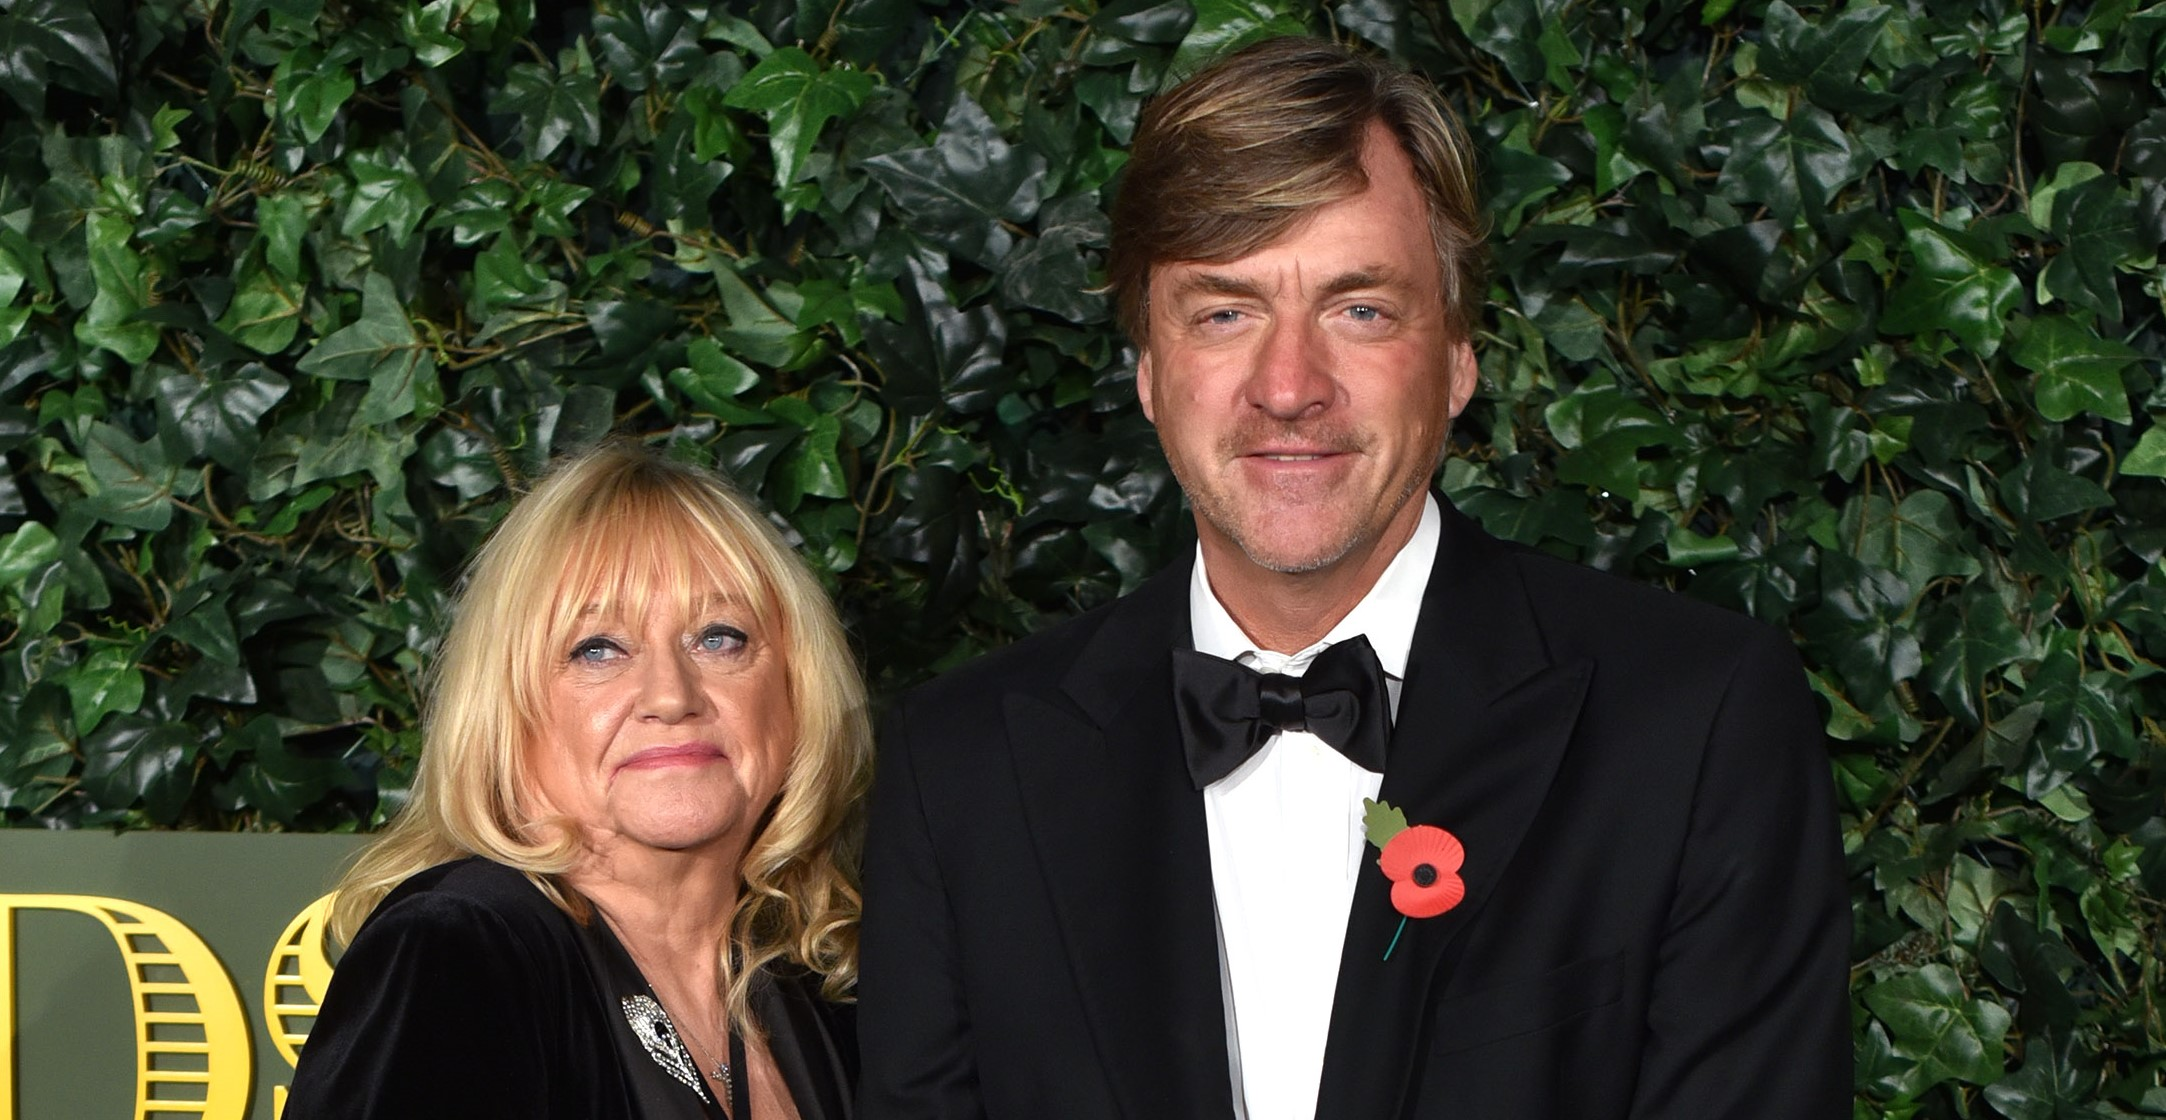 Judy Finnigan and Richard Madeley returning to This Morning after 18 years